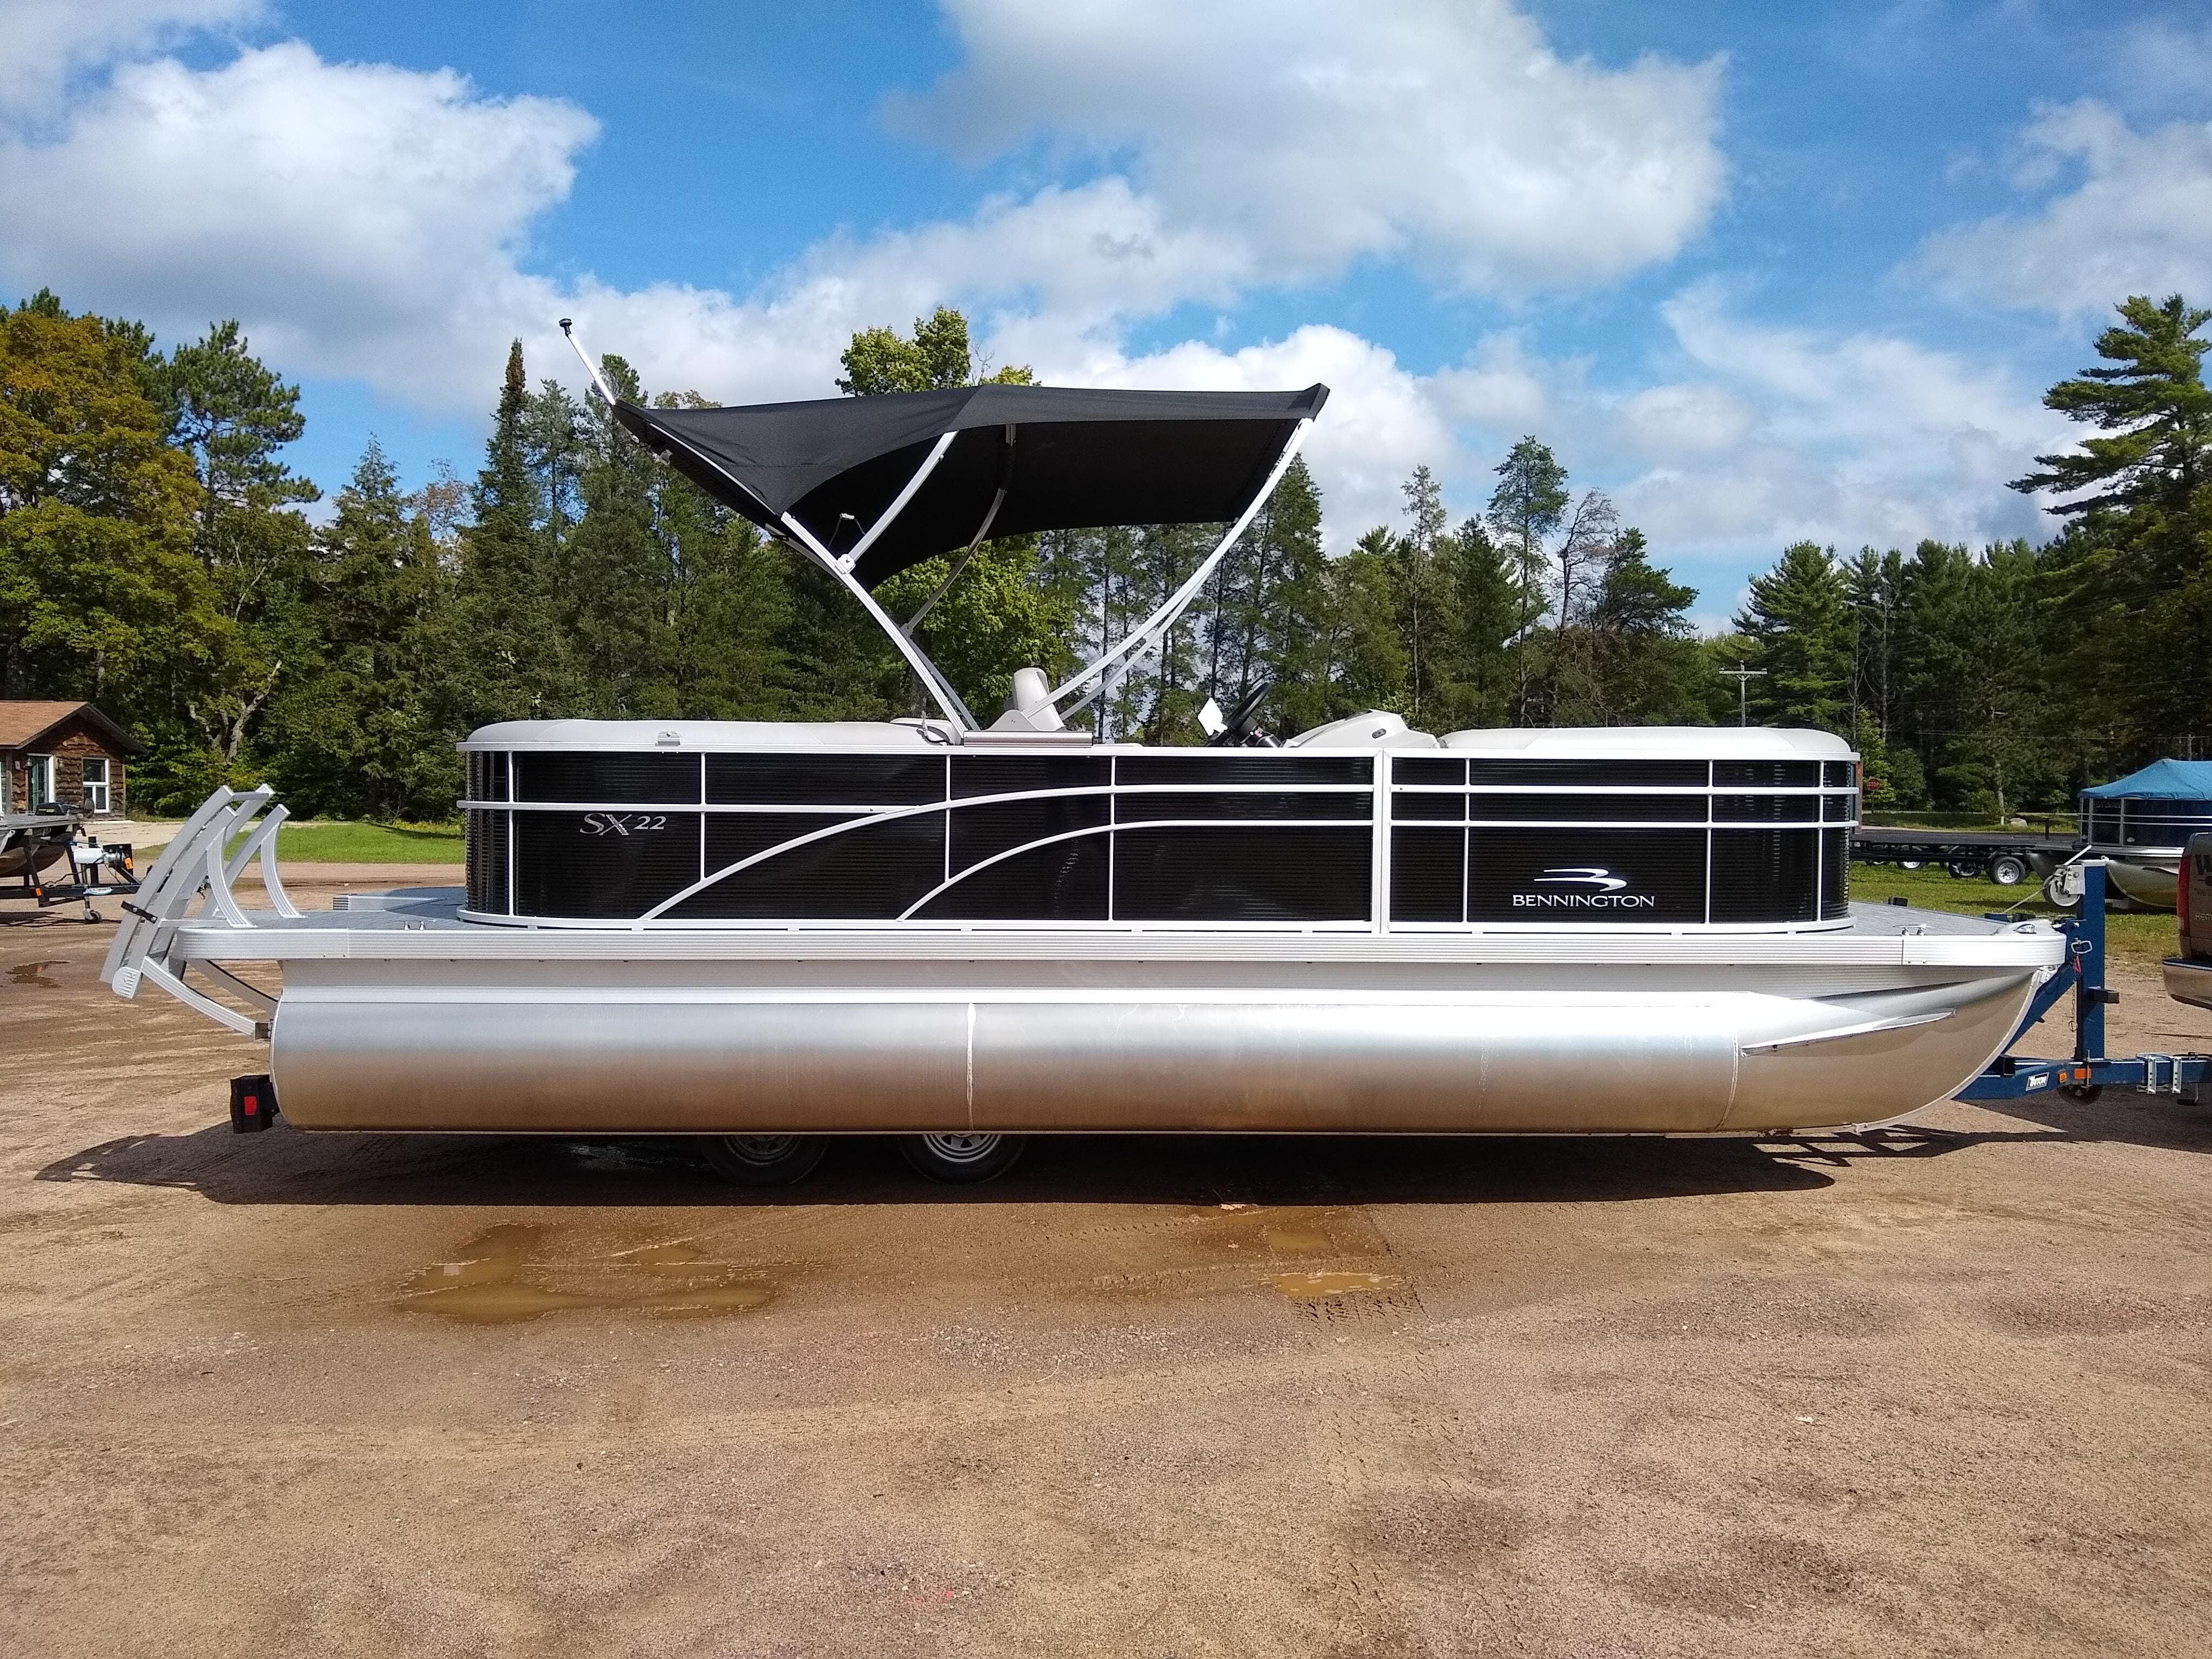 2020 Bennington boat for sale, model of the boat is SX Series 22 & Image # 1 of 14